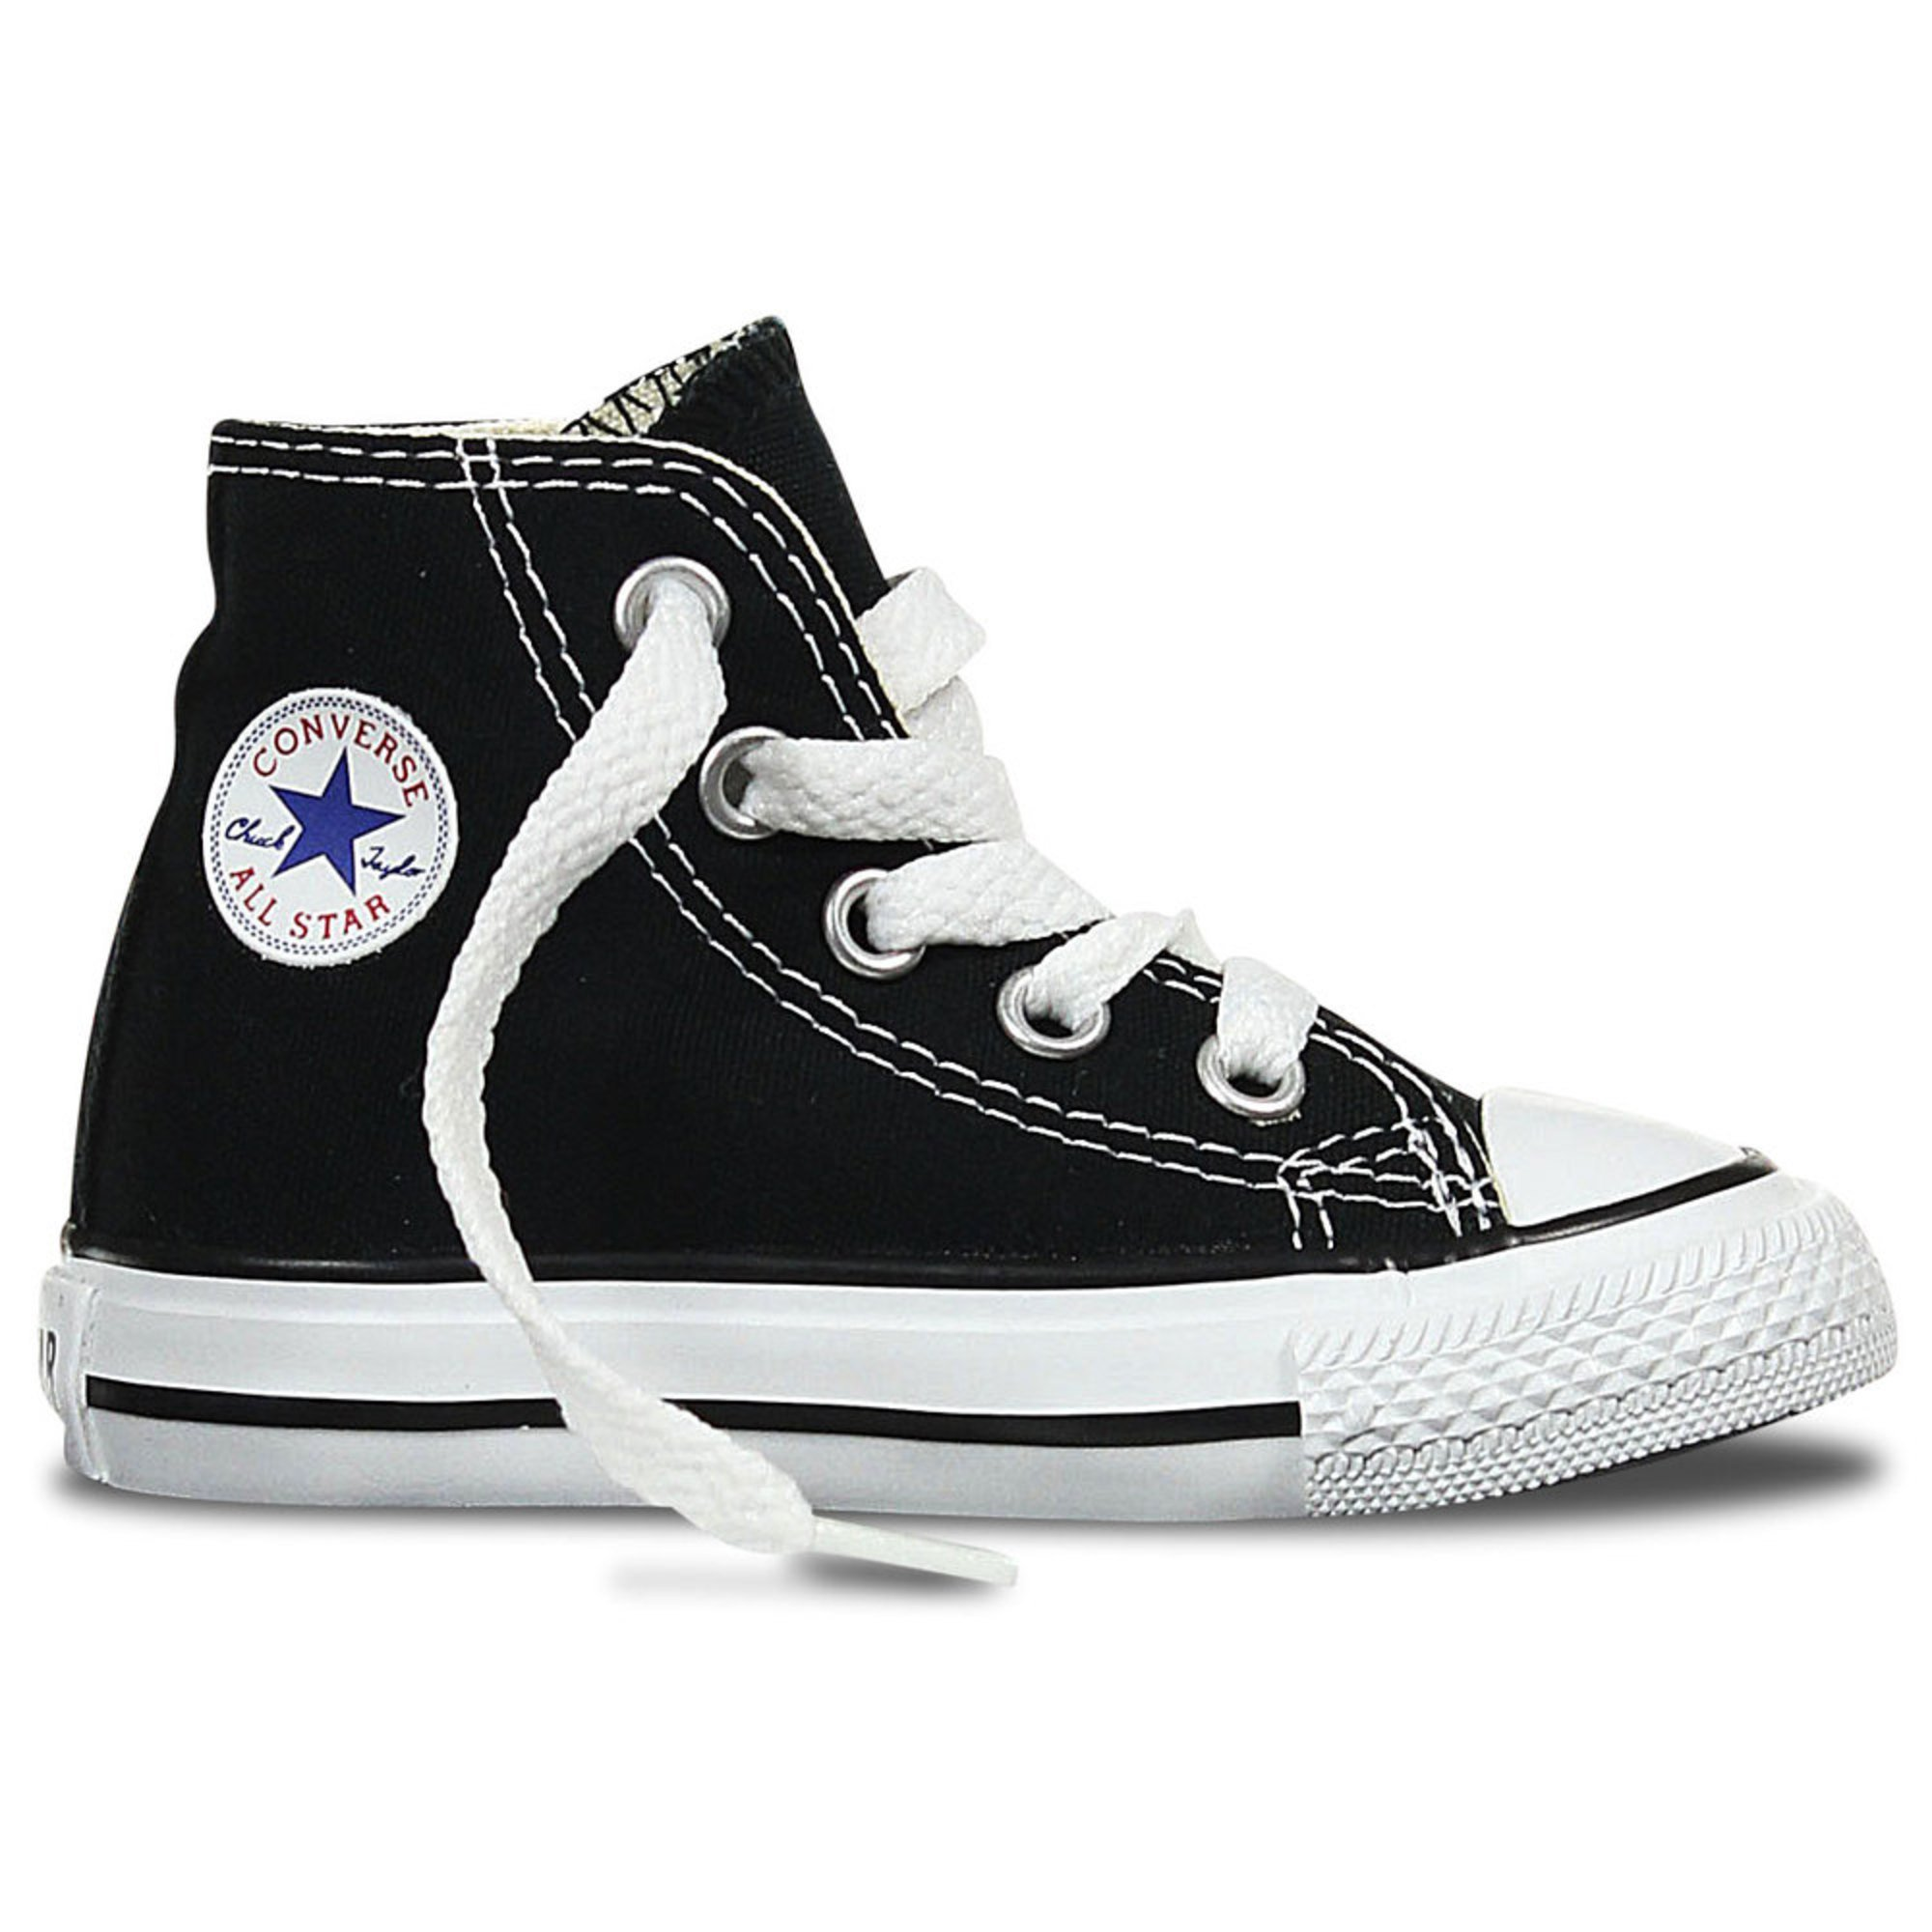 6ca4264aeccf Converse. Converse Boys Chuck Taylor All Star Hi Top Basketball Shoe (Infant  Toddler)